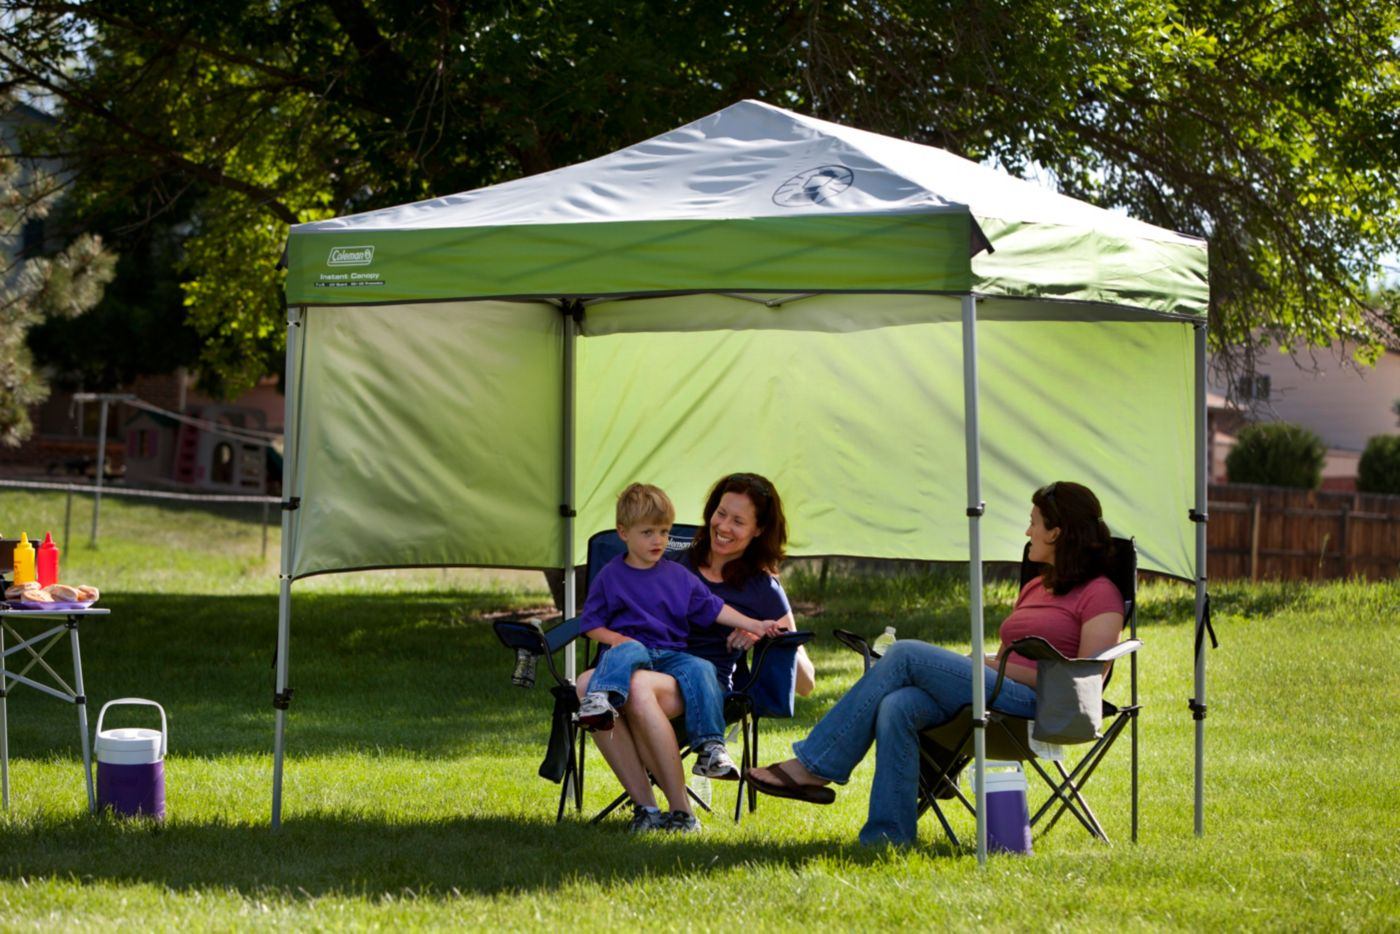 Instant Canopy Sunwall Accessory · Instant Canopy Sunwall Accessory  sc 1 st  Coleman & Instant Canopy | Camping Accessories | Coleman